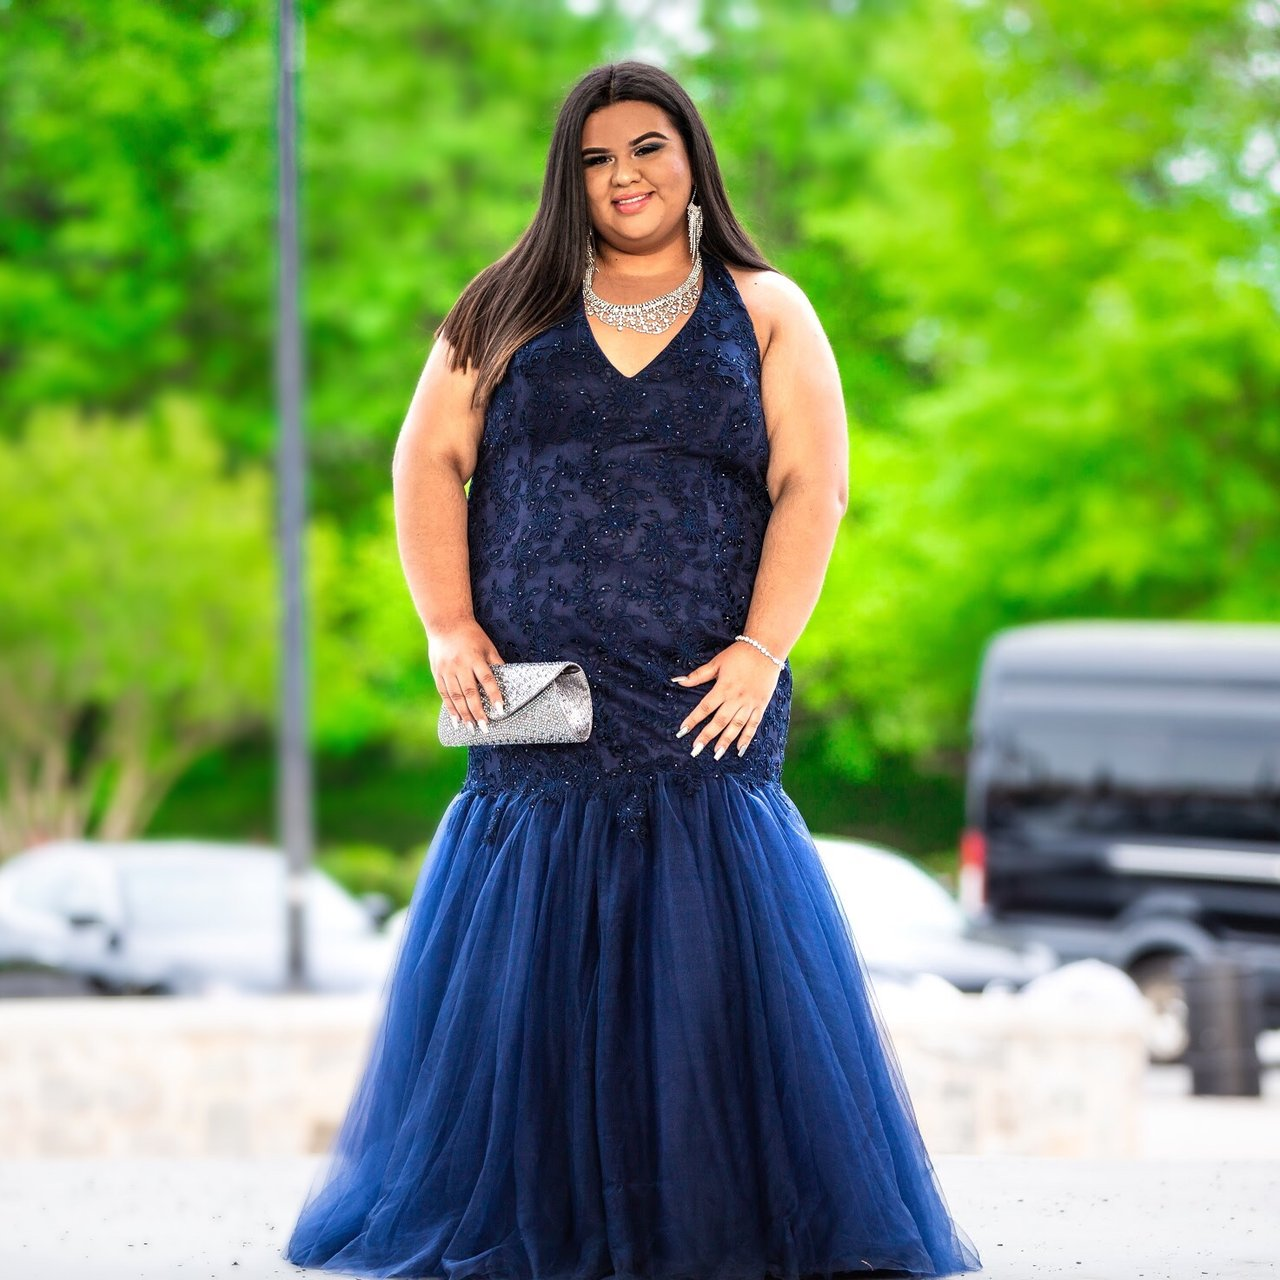 Plus Size Formal Dresses Used